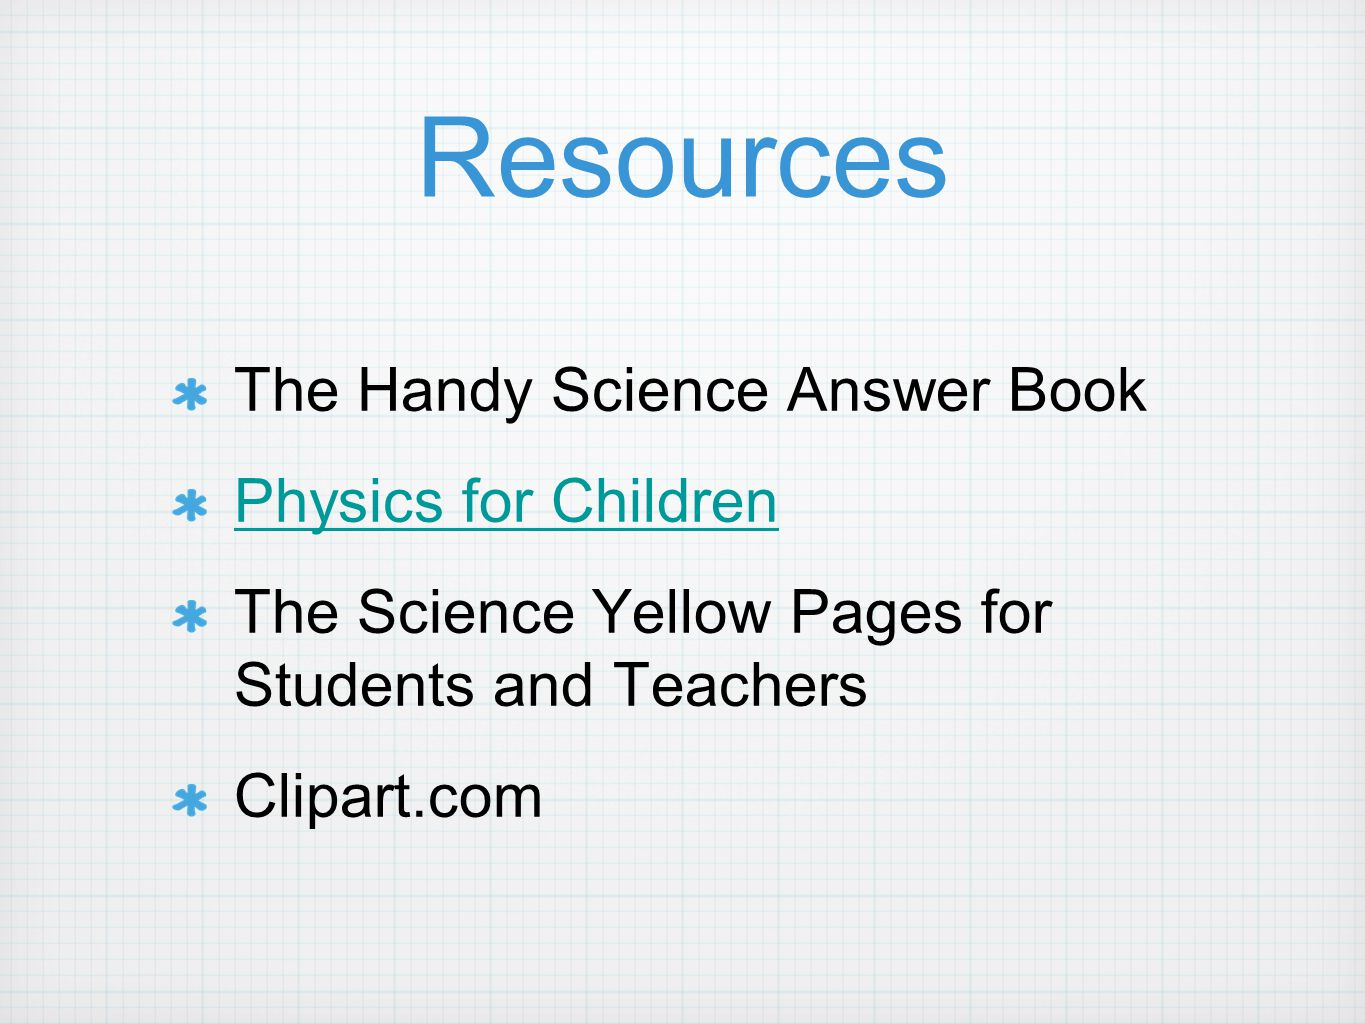 Resources The Handy Science Answer Book Physics for Children The Science Yellow Pages for Students and Teachers Clipart.com